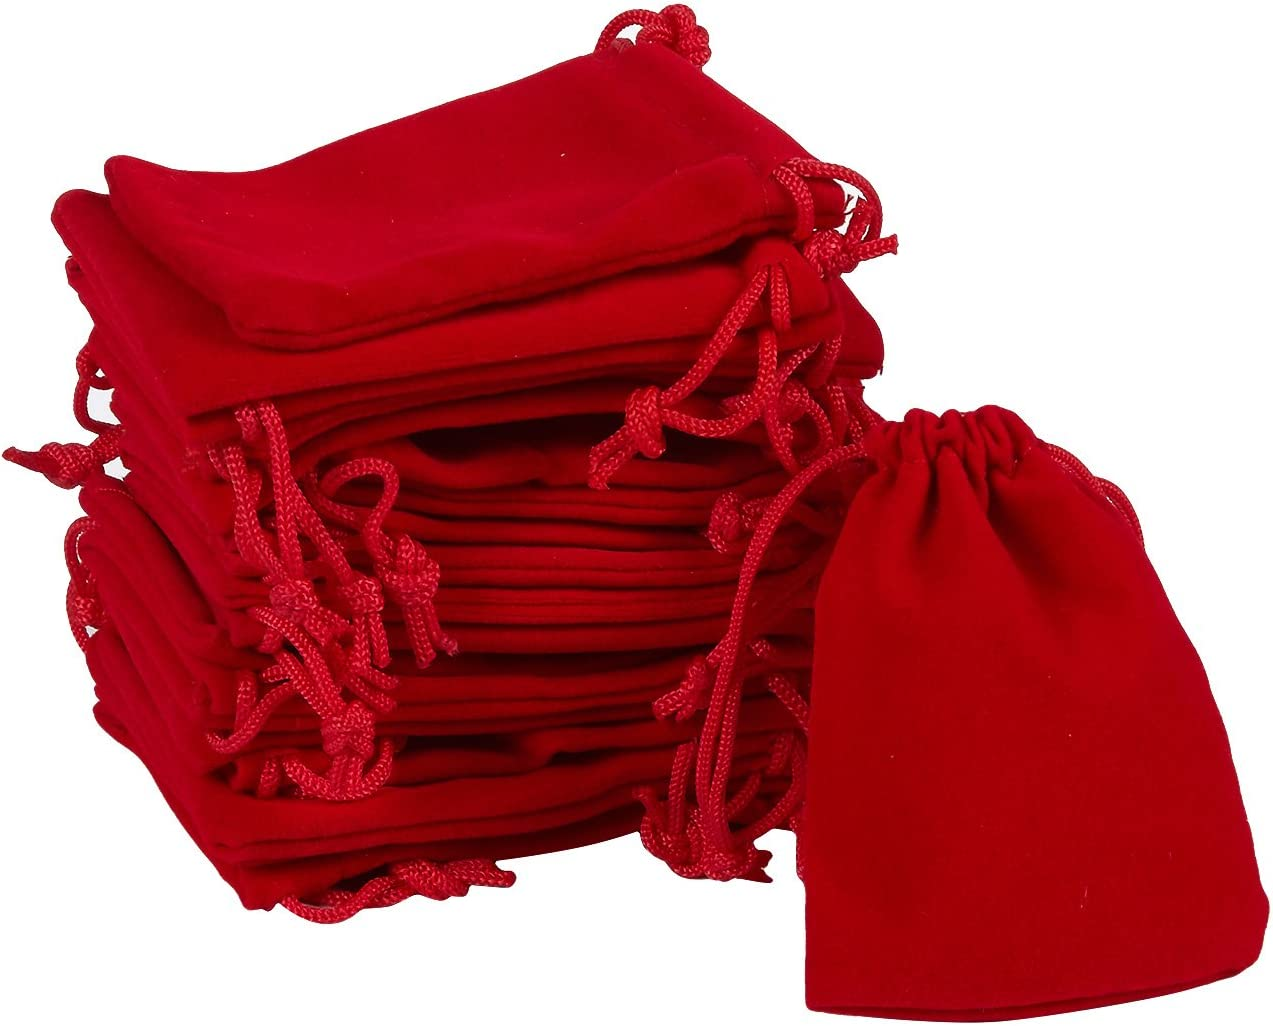 60 Pieces Wholesale Lot 4.7 X 5.9 3.5 X 4.7 Mixed Size Red Velvet Cloth Jewelry Gift Pouches // Drawstring Bags 3 X 4